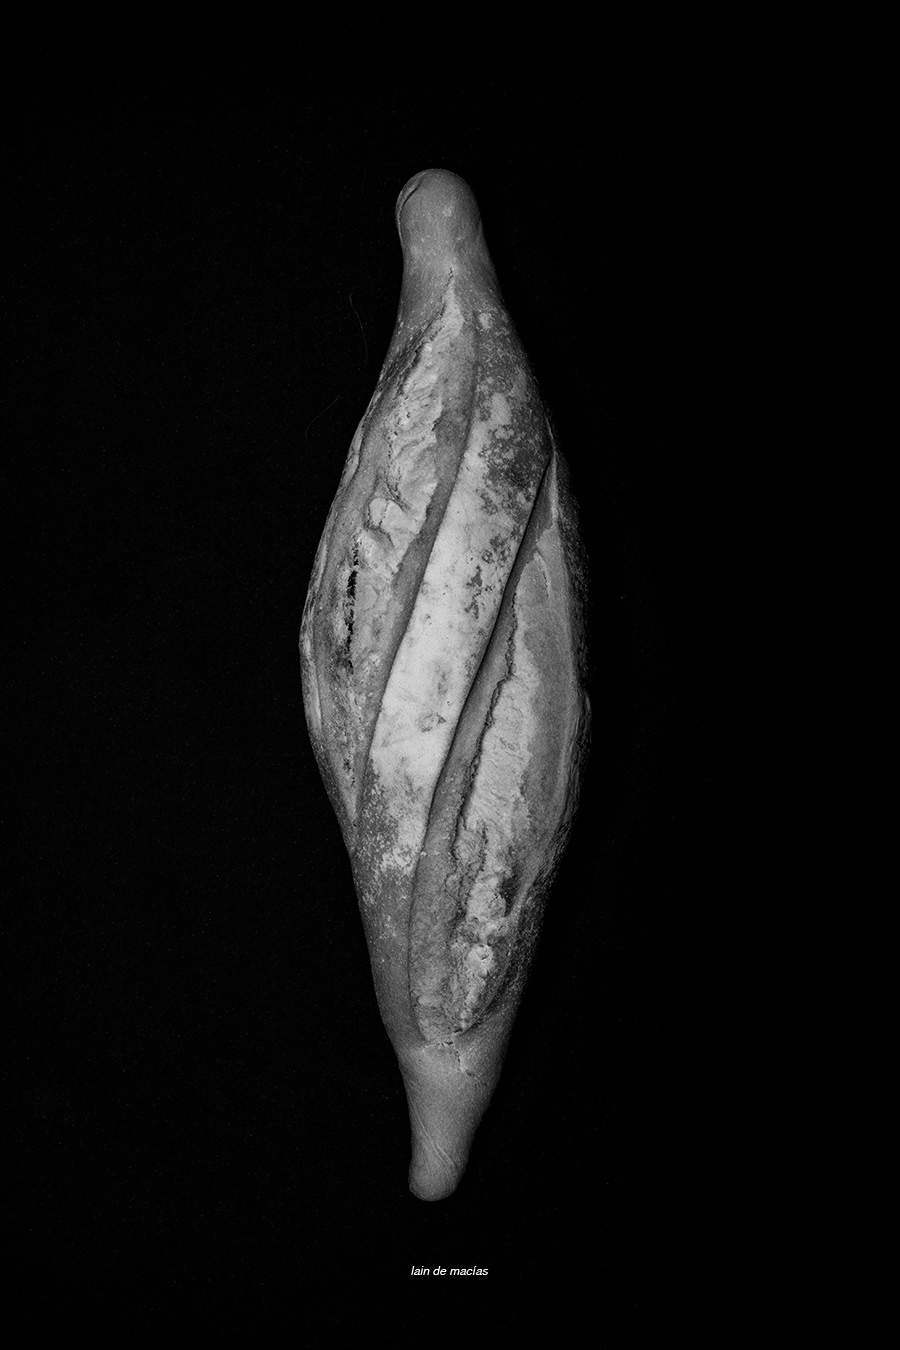 abstract abstracto bread breads byn Pan panes Photography